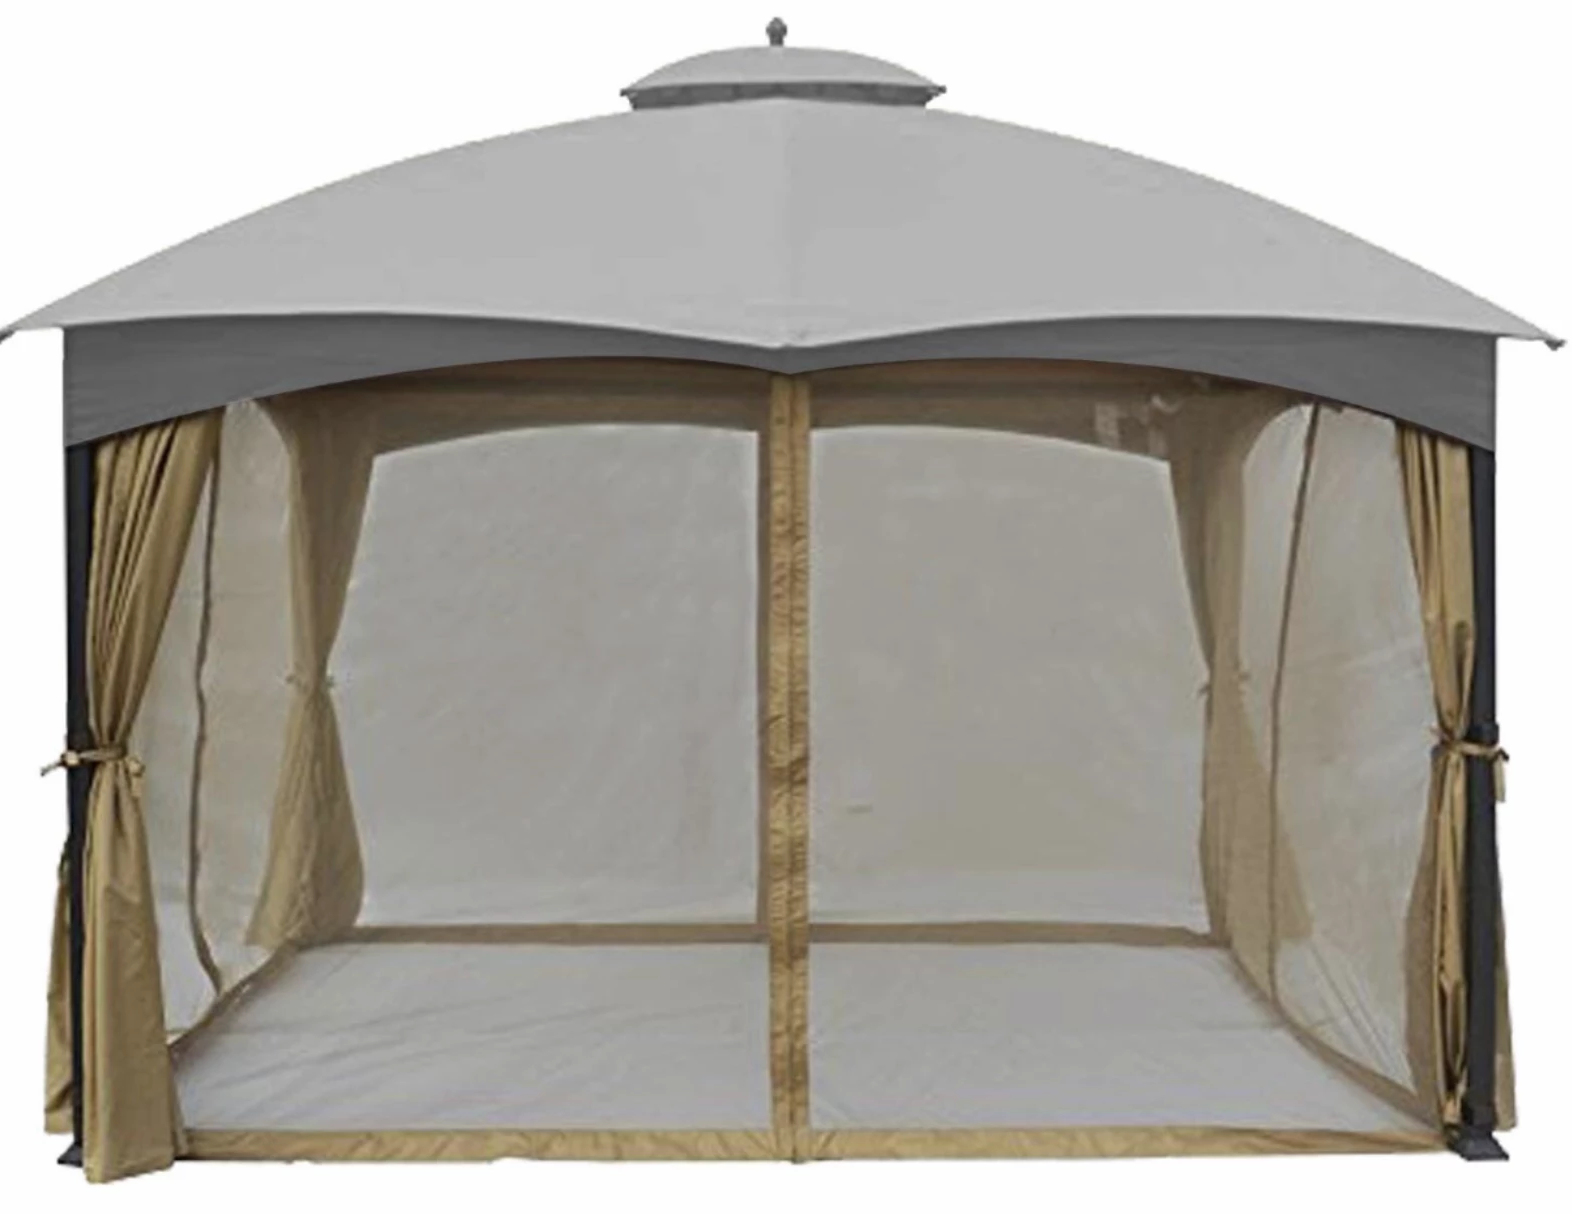 LOWES ALLEN AND ROTH 10 X 12 REPLACEMENT GAZEBO MOSQUITO